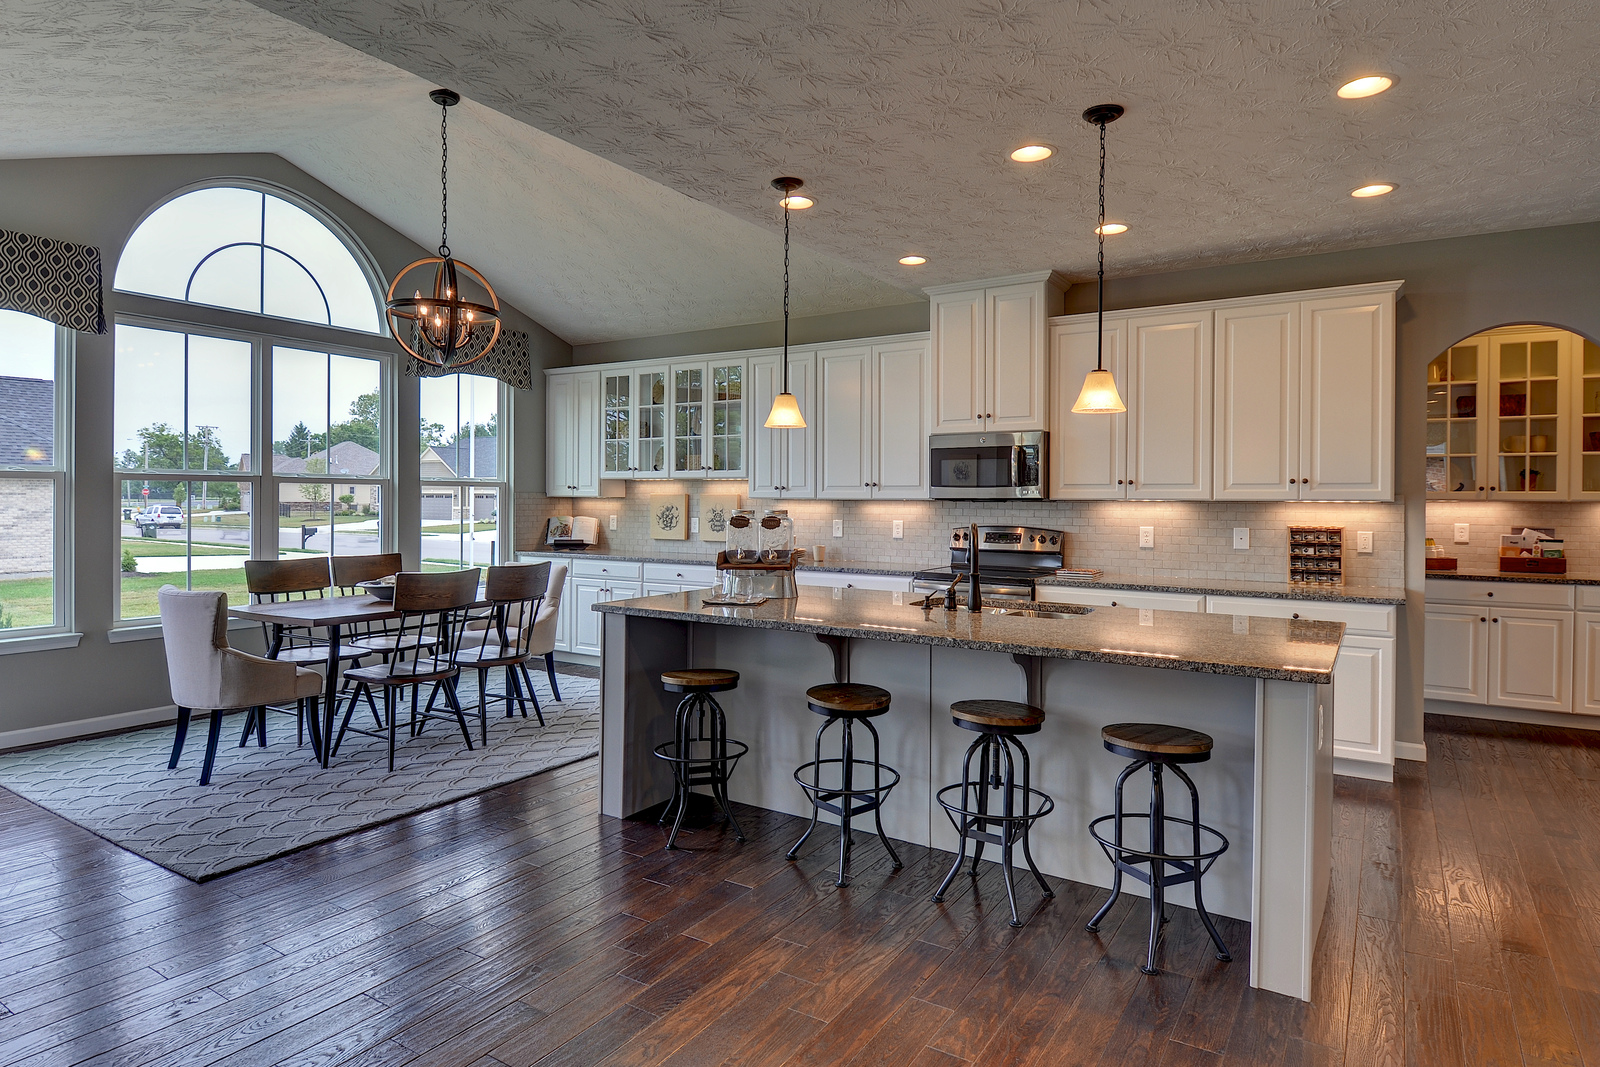 New homes for sale at dover highlands in medina oh within for Carolina plan room